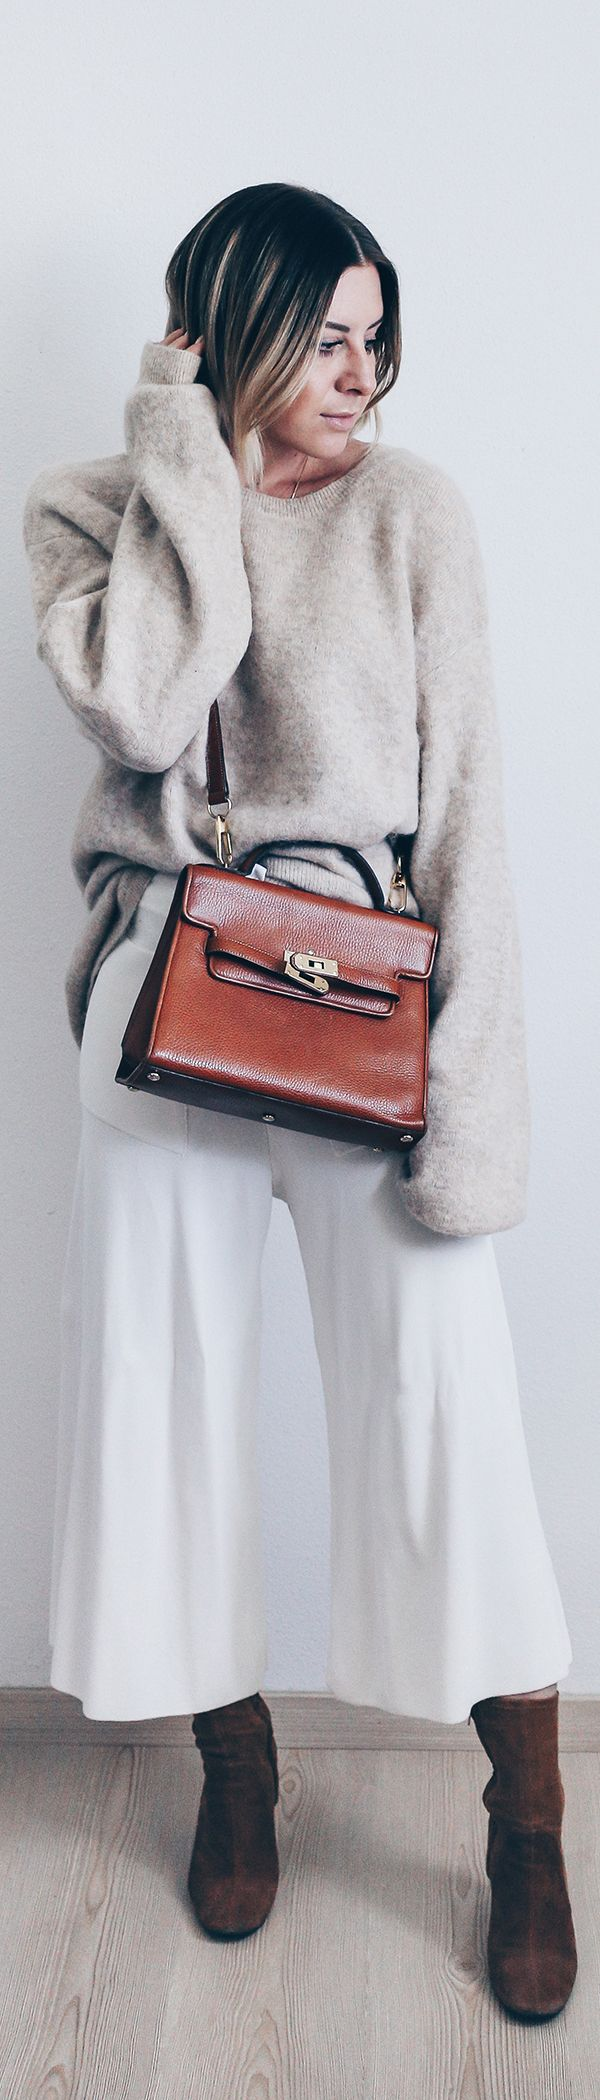 Trendfarben 2017: Die Must-haves im Herbst! (+7 Outfits zum Nachstylen) – Who is Mocca? – Fashion Trends, Outfits, Interior Inspiration, Beauty Tipps und Karriere Guides